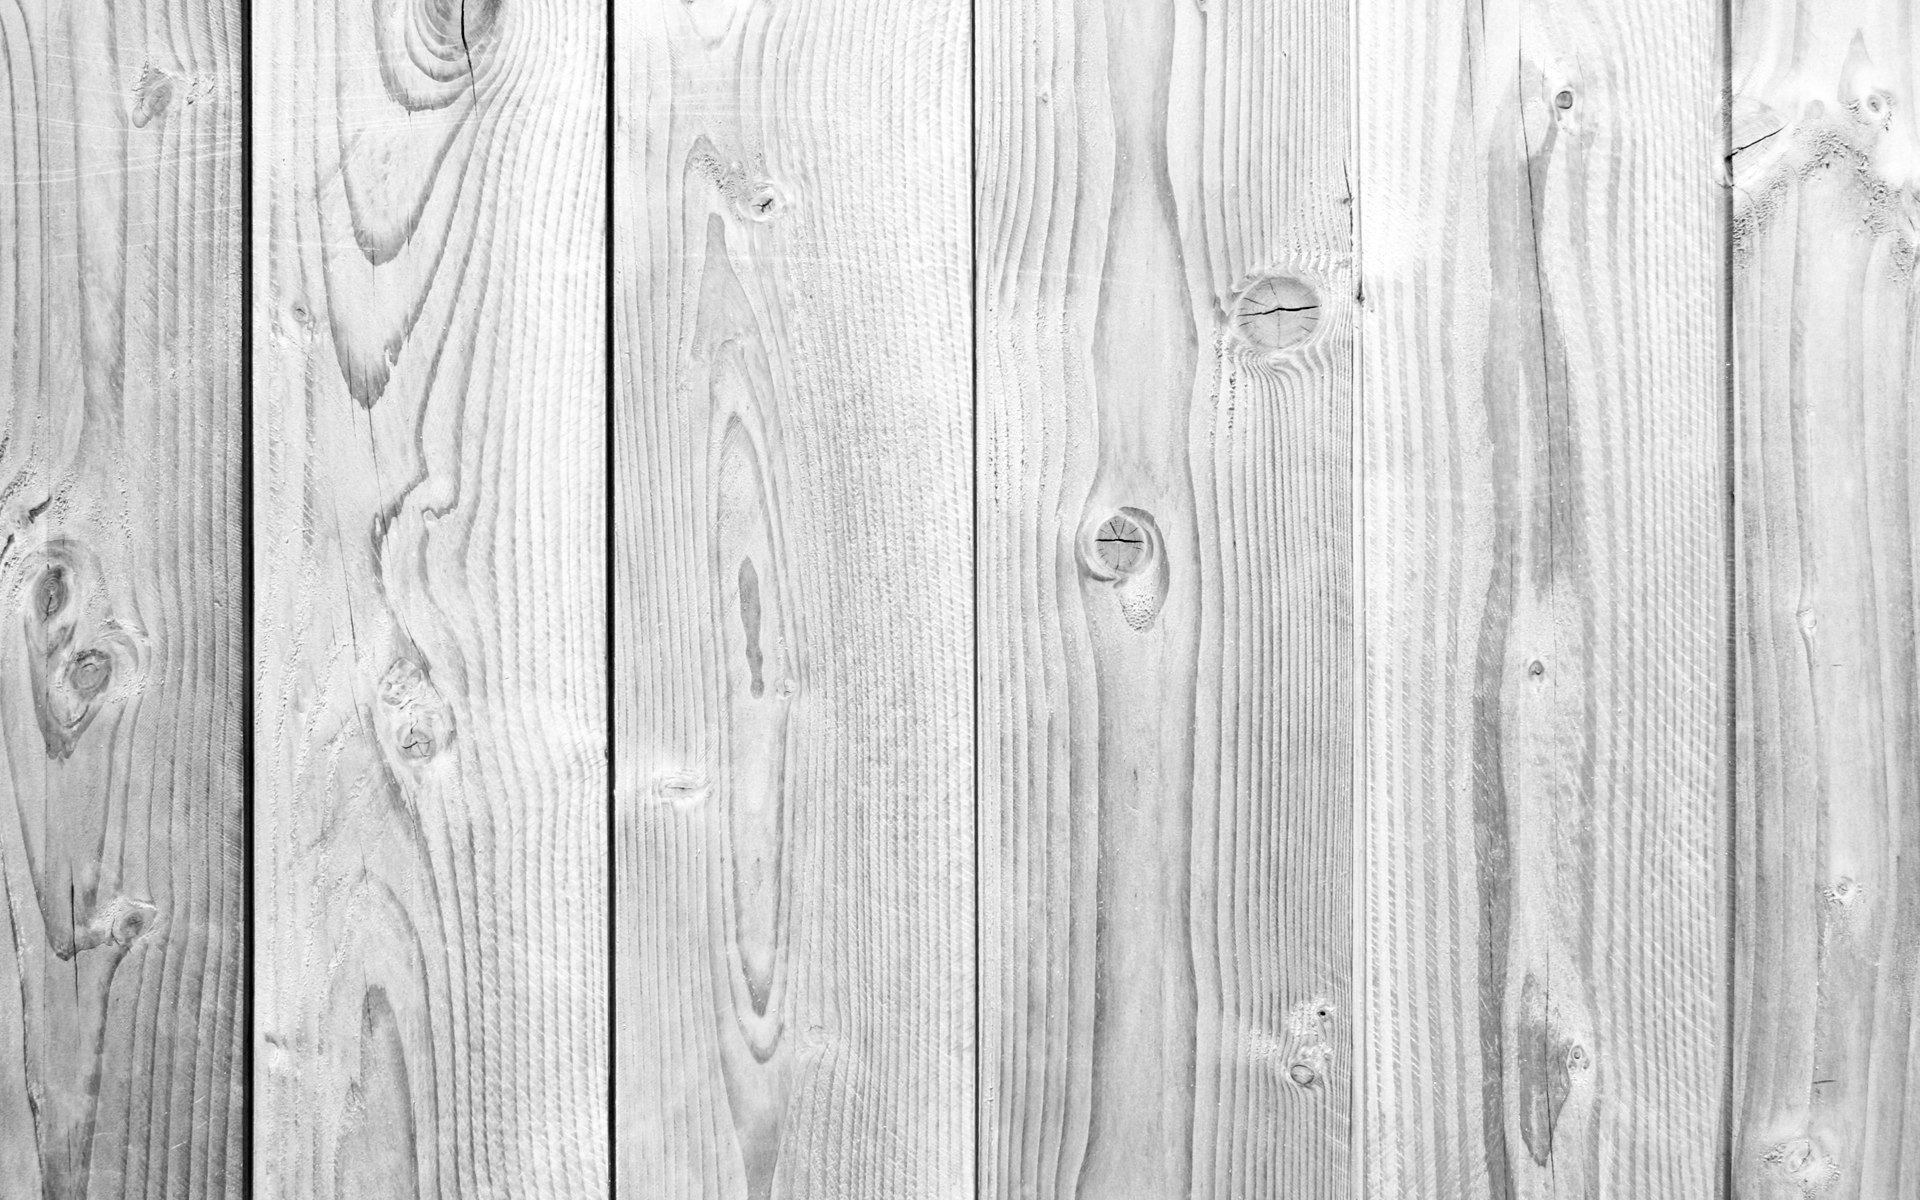 White wood table texture - 14592616261579507298white Wood Wall Texture Wallpaper 14592616261579507298white Wood Wall Texture Wallpaper Hotel